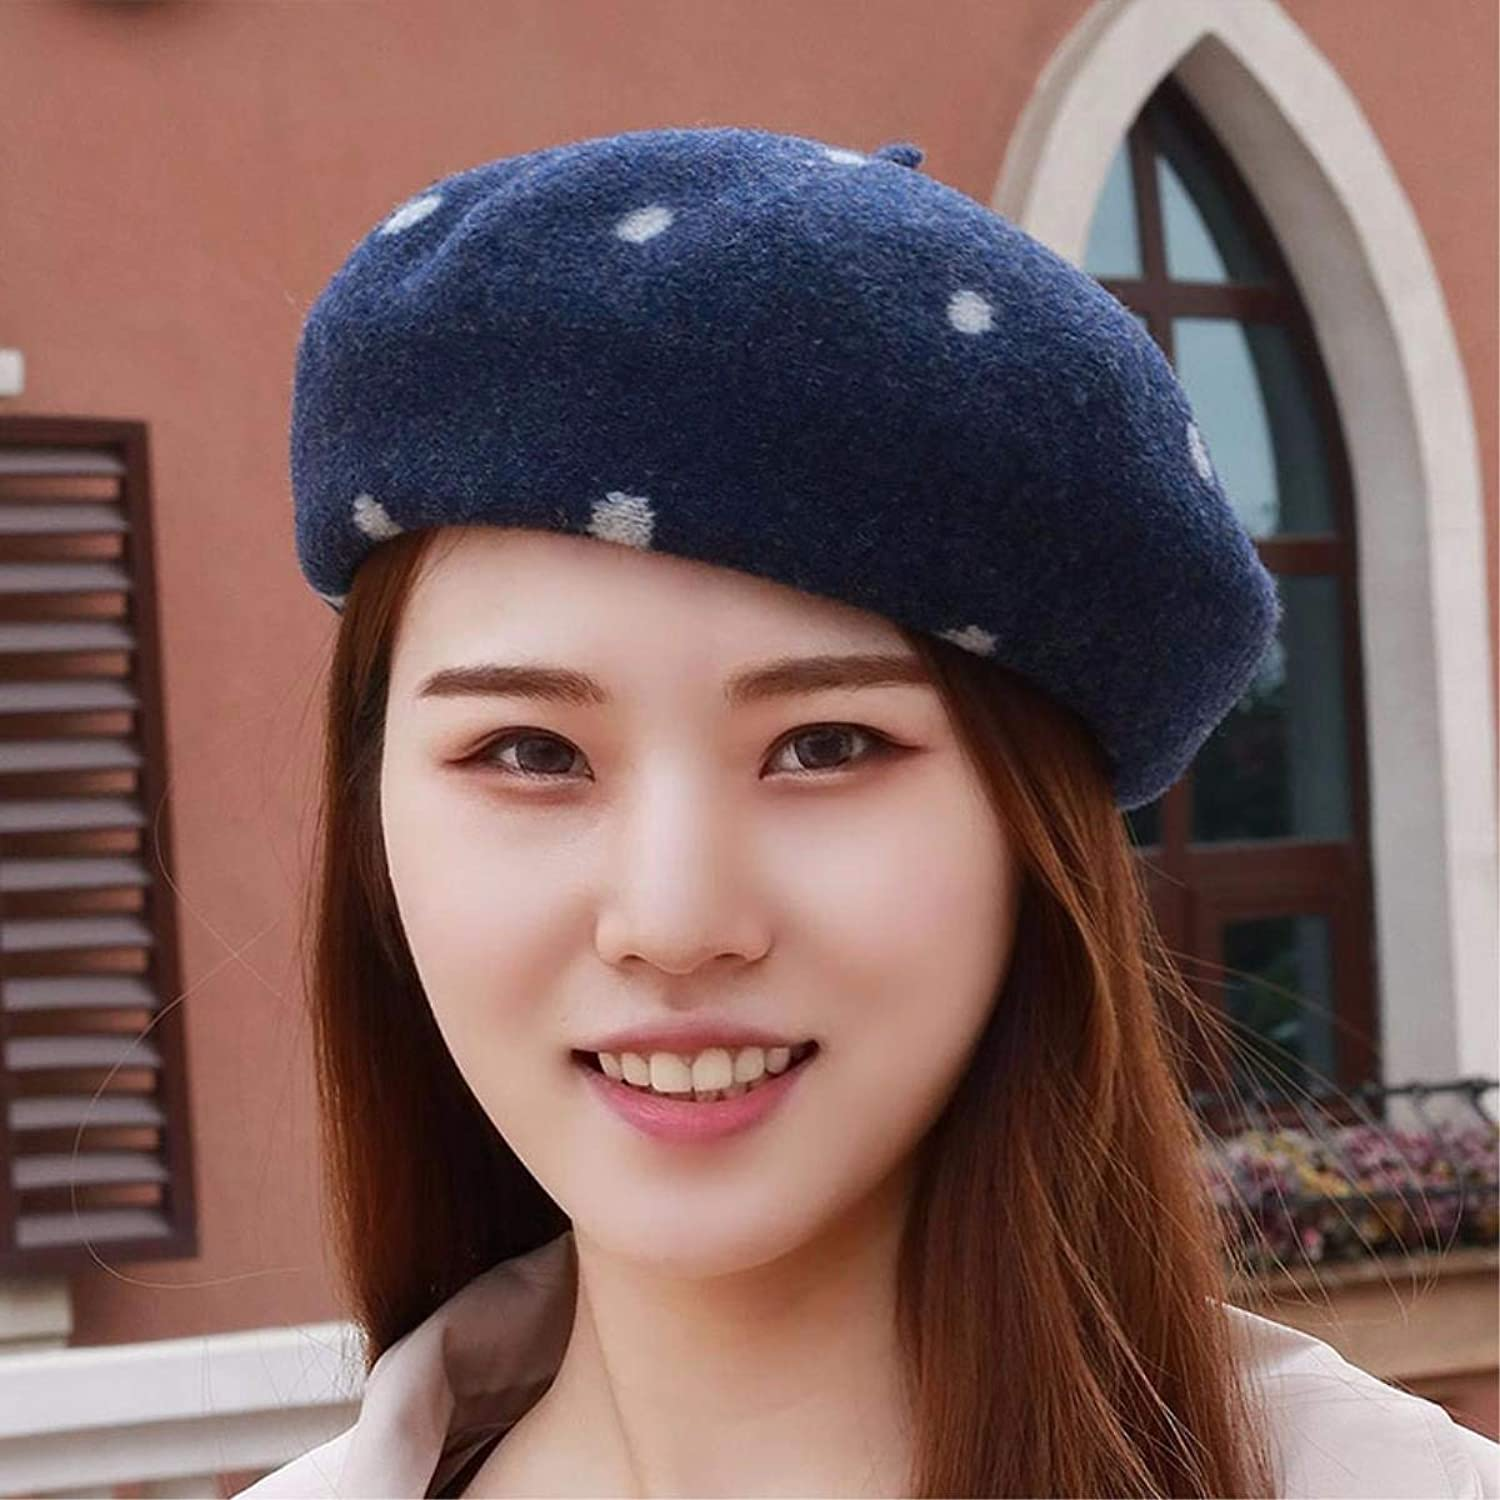 Chuangshengnet Autumn winter beret girl autumn WINTER HAT wool cap, painter, pumpkin cap tide